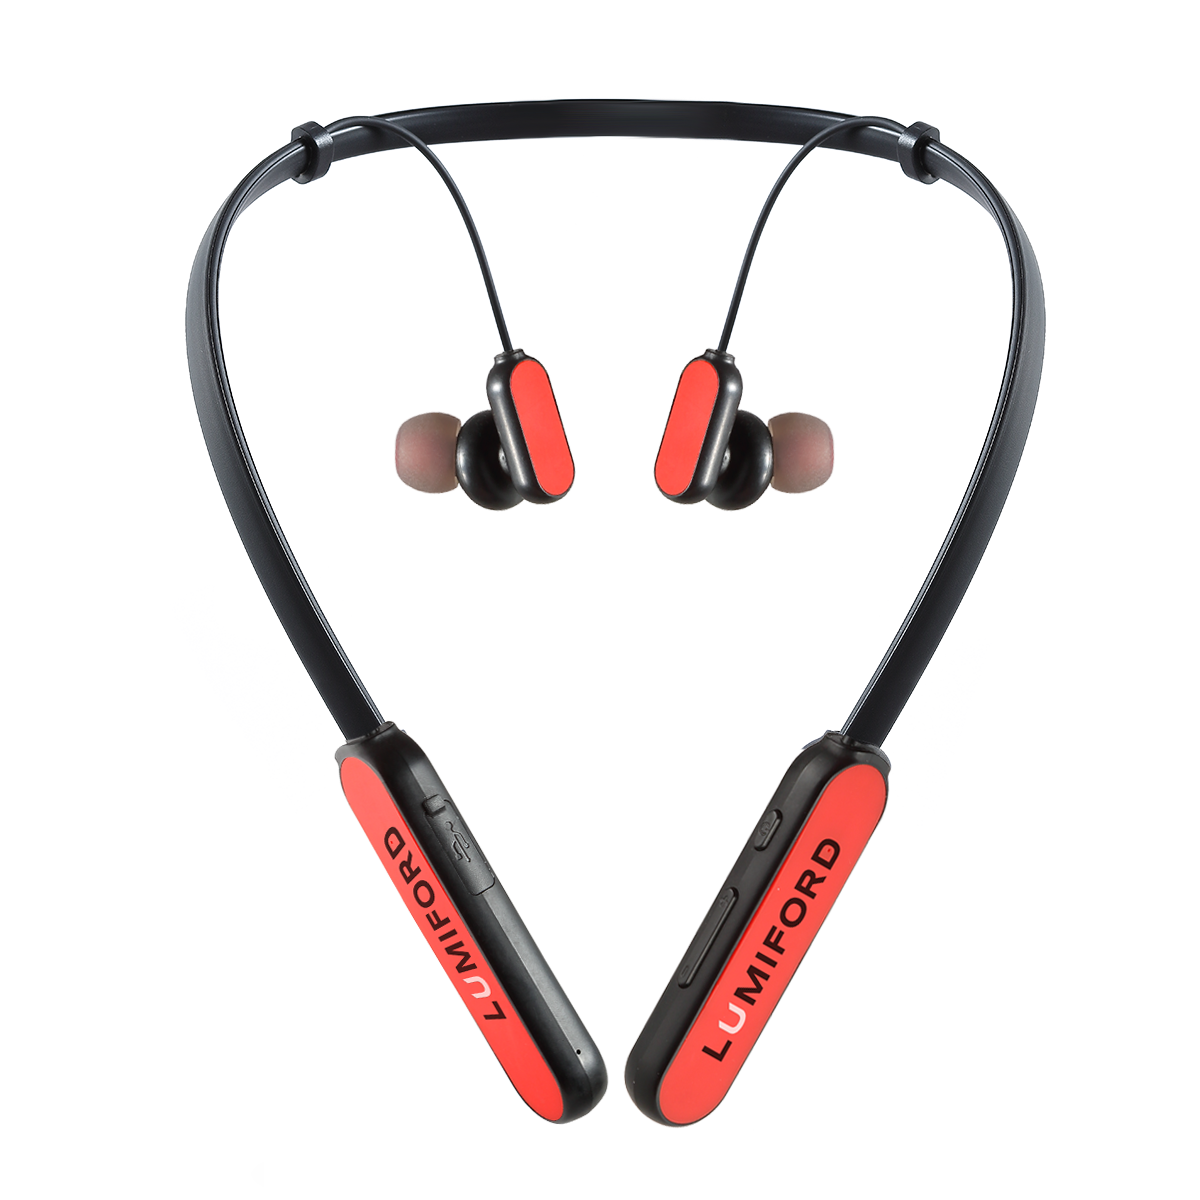 LUMIFORD XP50 Wireless Neckband in-Ear Earphones with Noise Cancellation